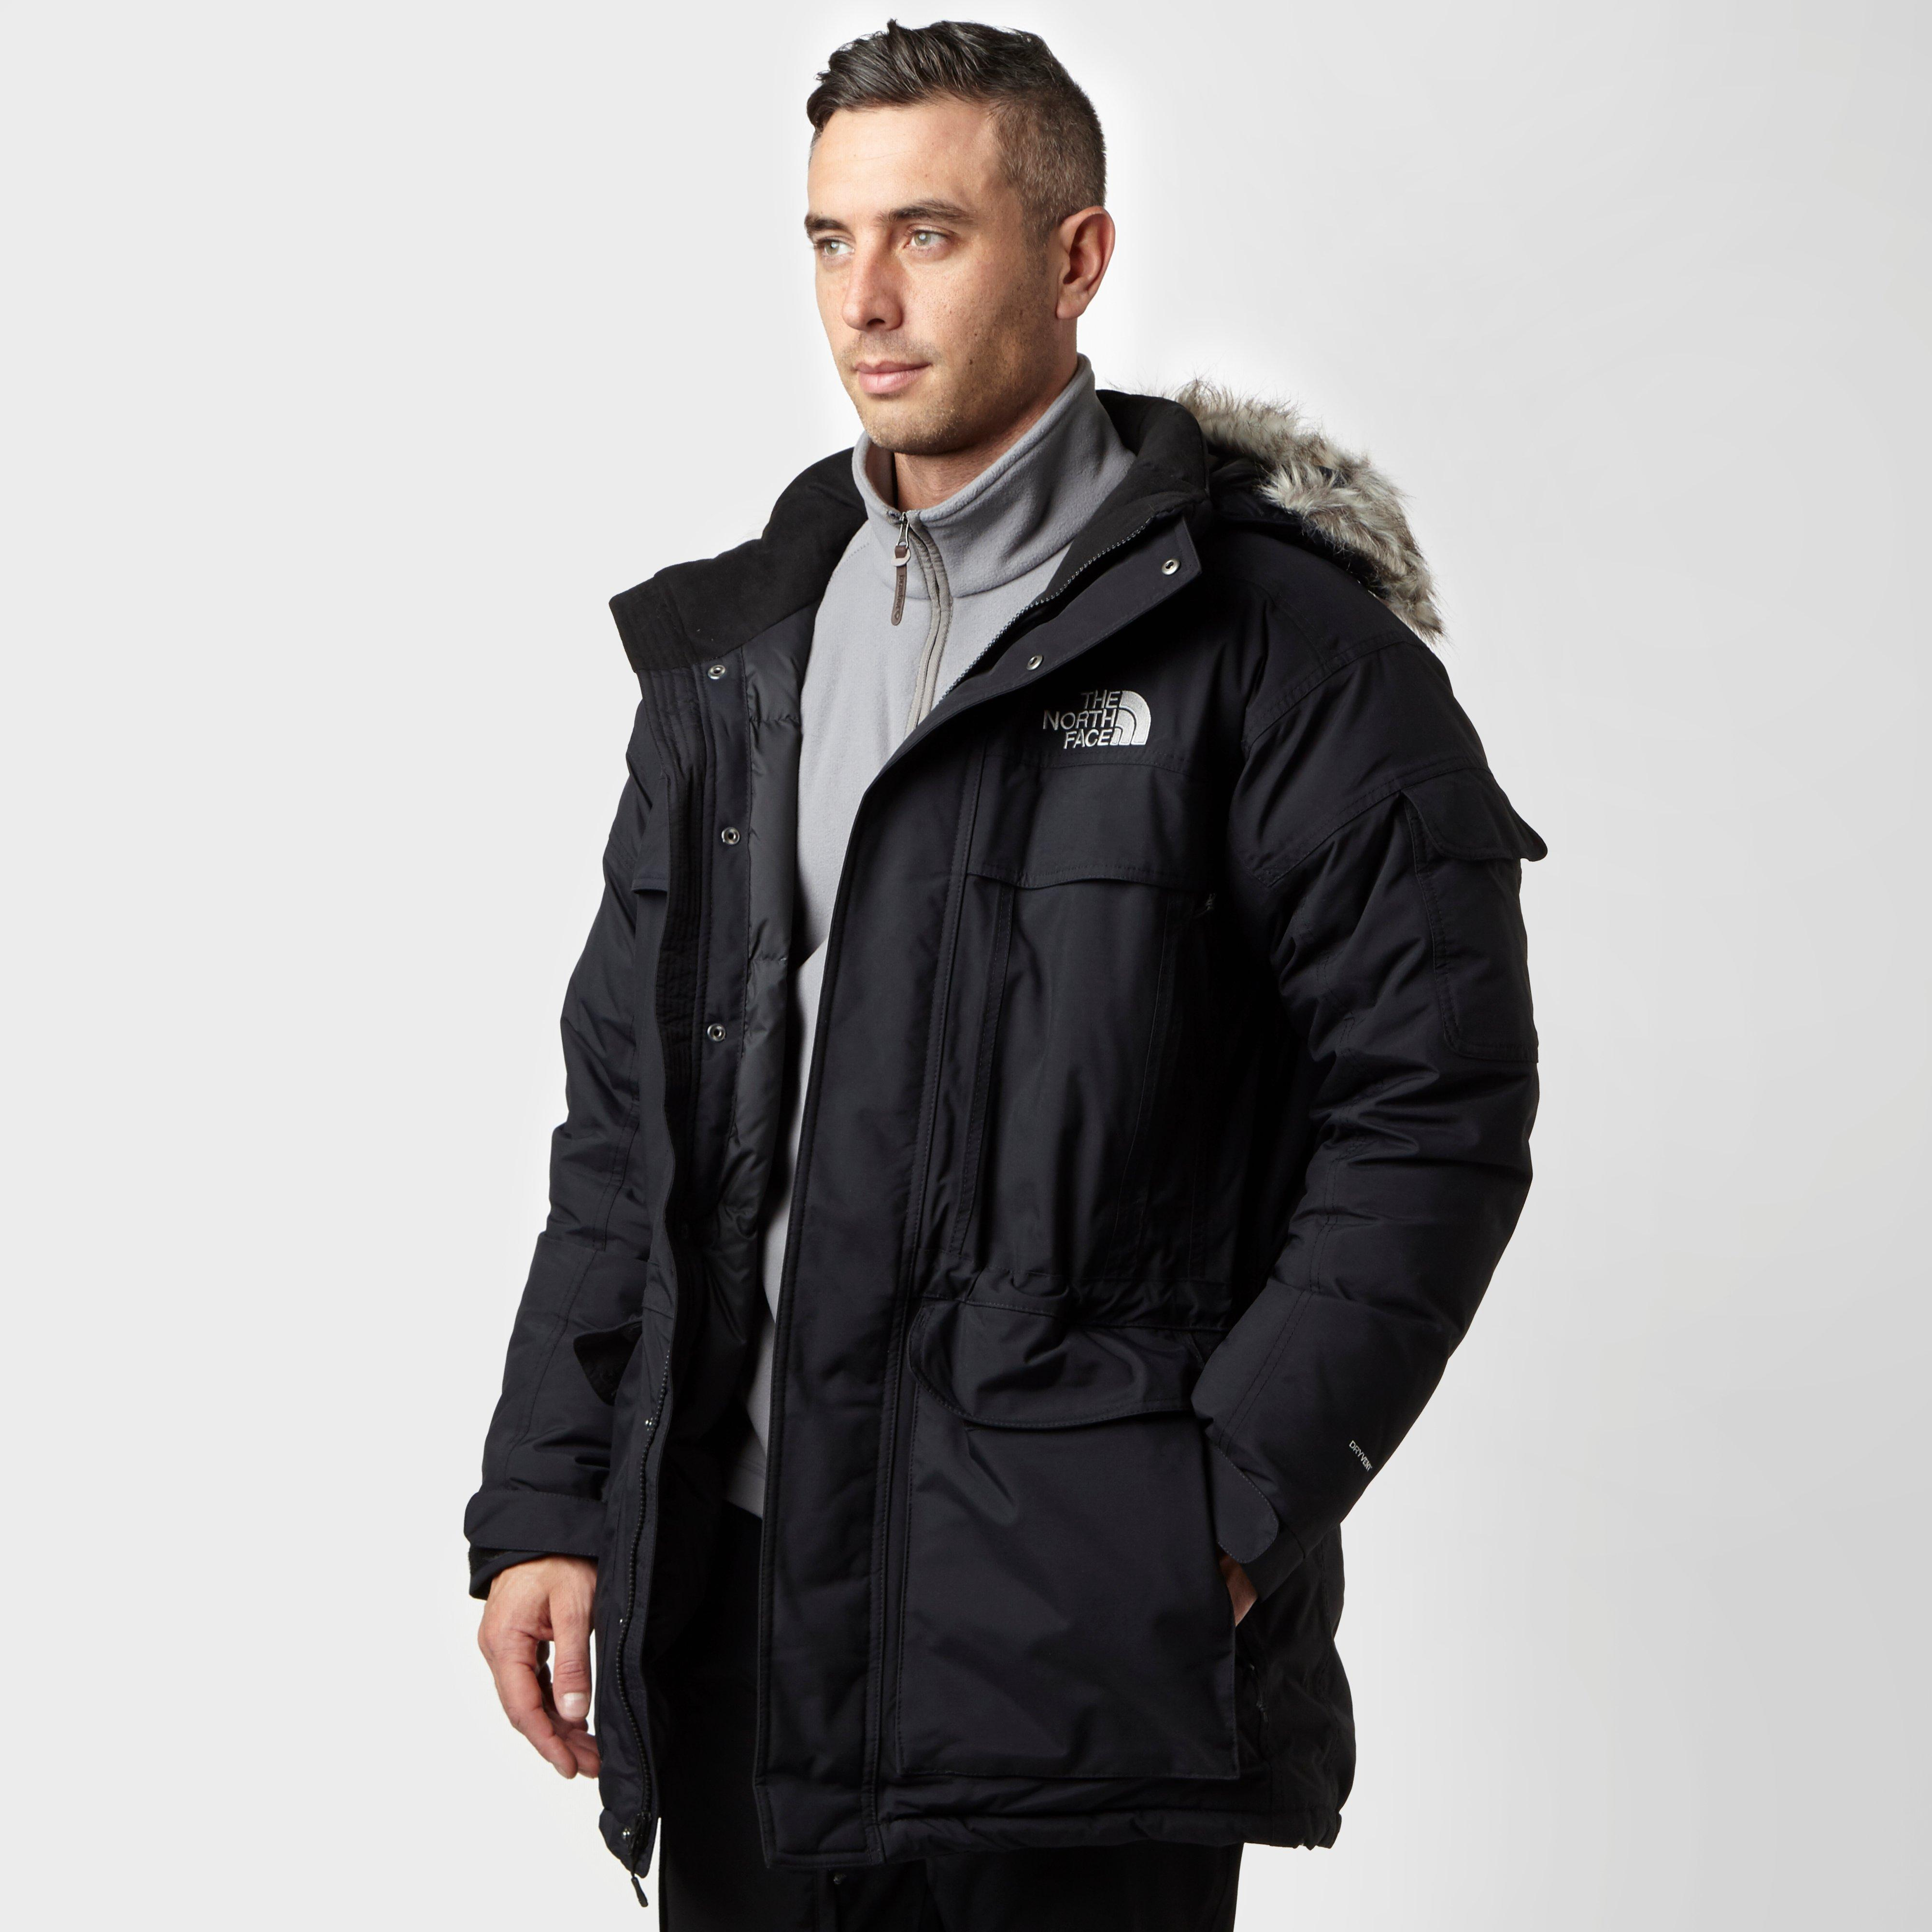 north face parka price comparison results. Black Bedroom Furniture Sets. Home Design Ideas